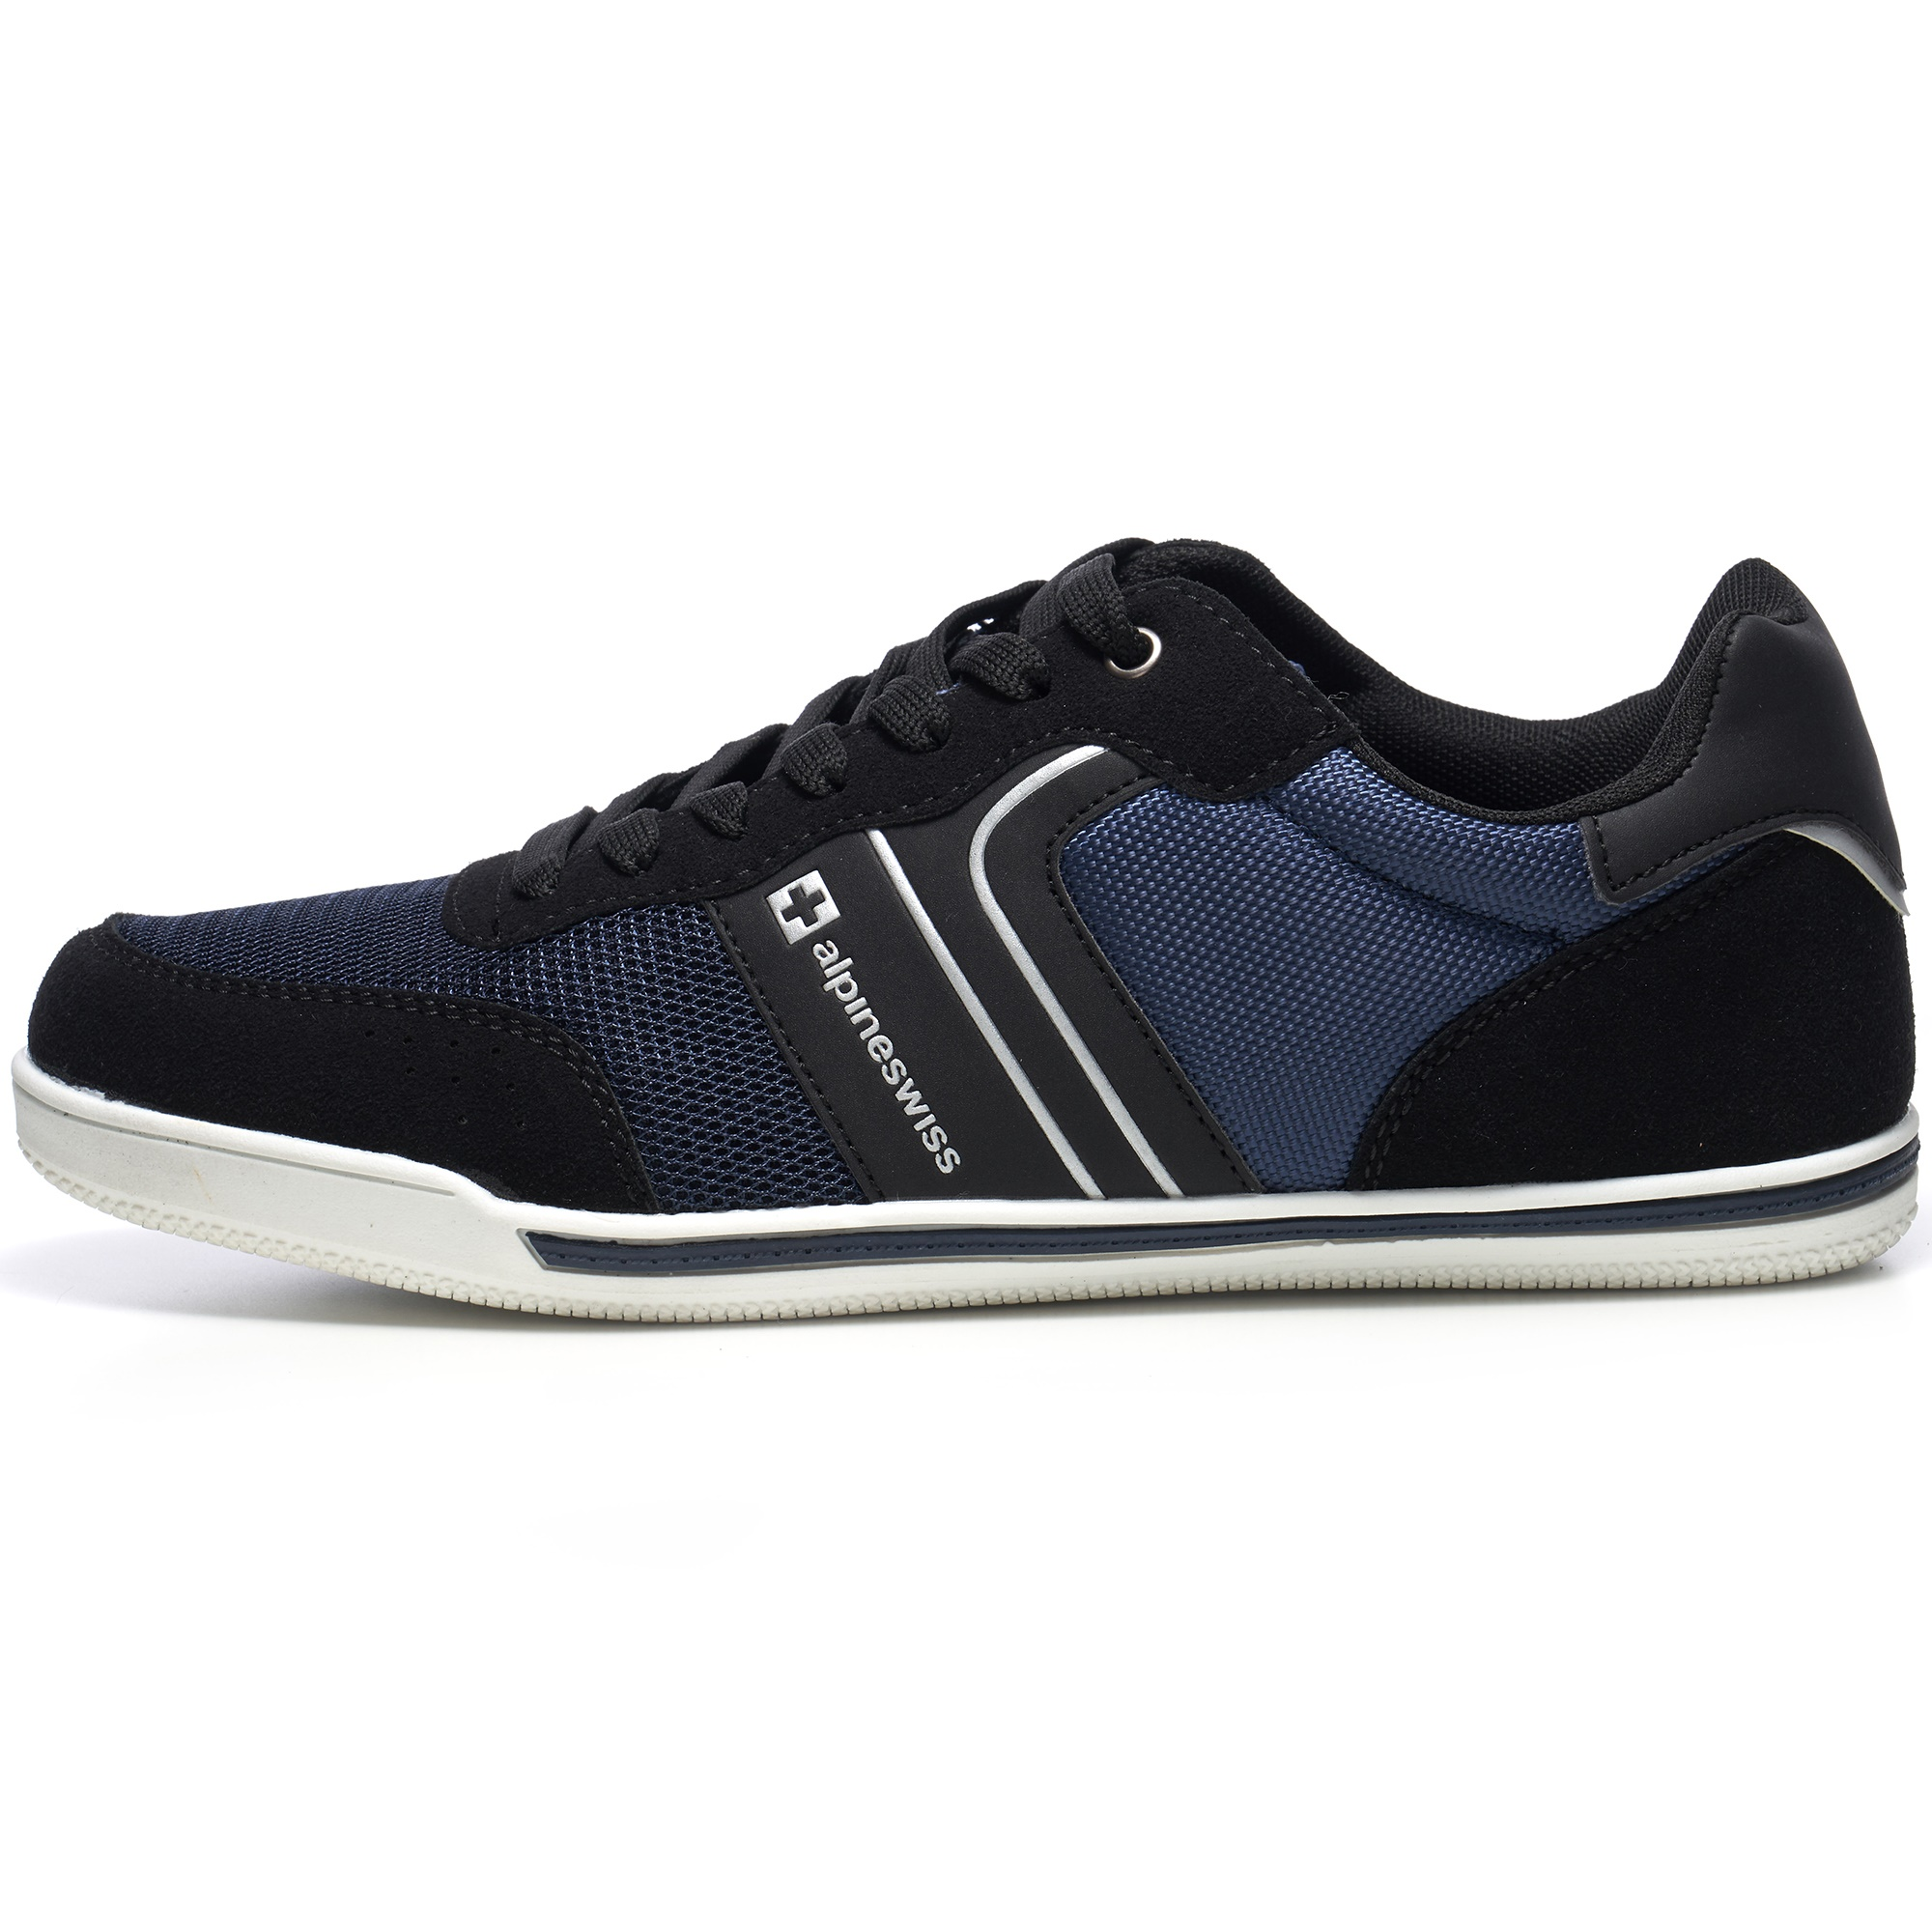 Alpine-Swiss-Liam-Mens-Fashion-Sneakers-Suede-Trim-Low-Top-Lace-Up-Tennis-Shoes thumbnail 32